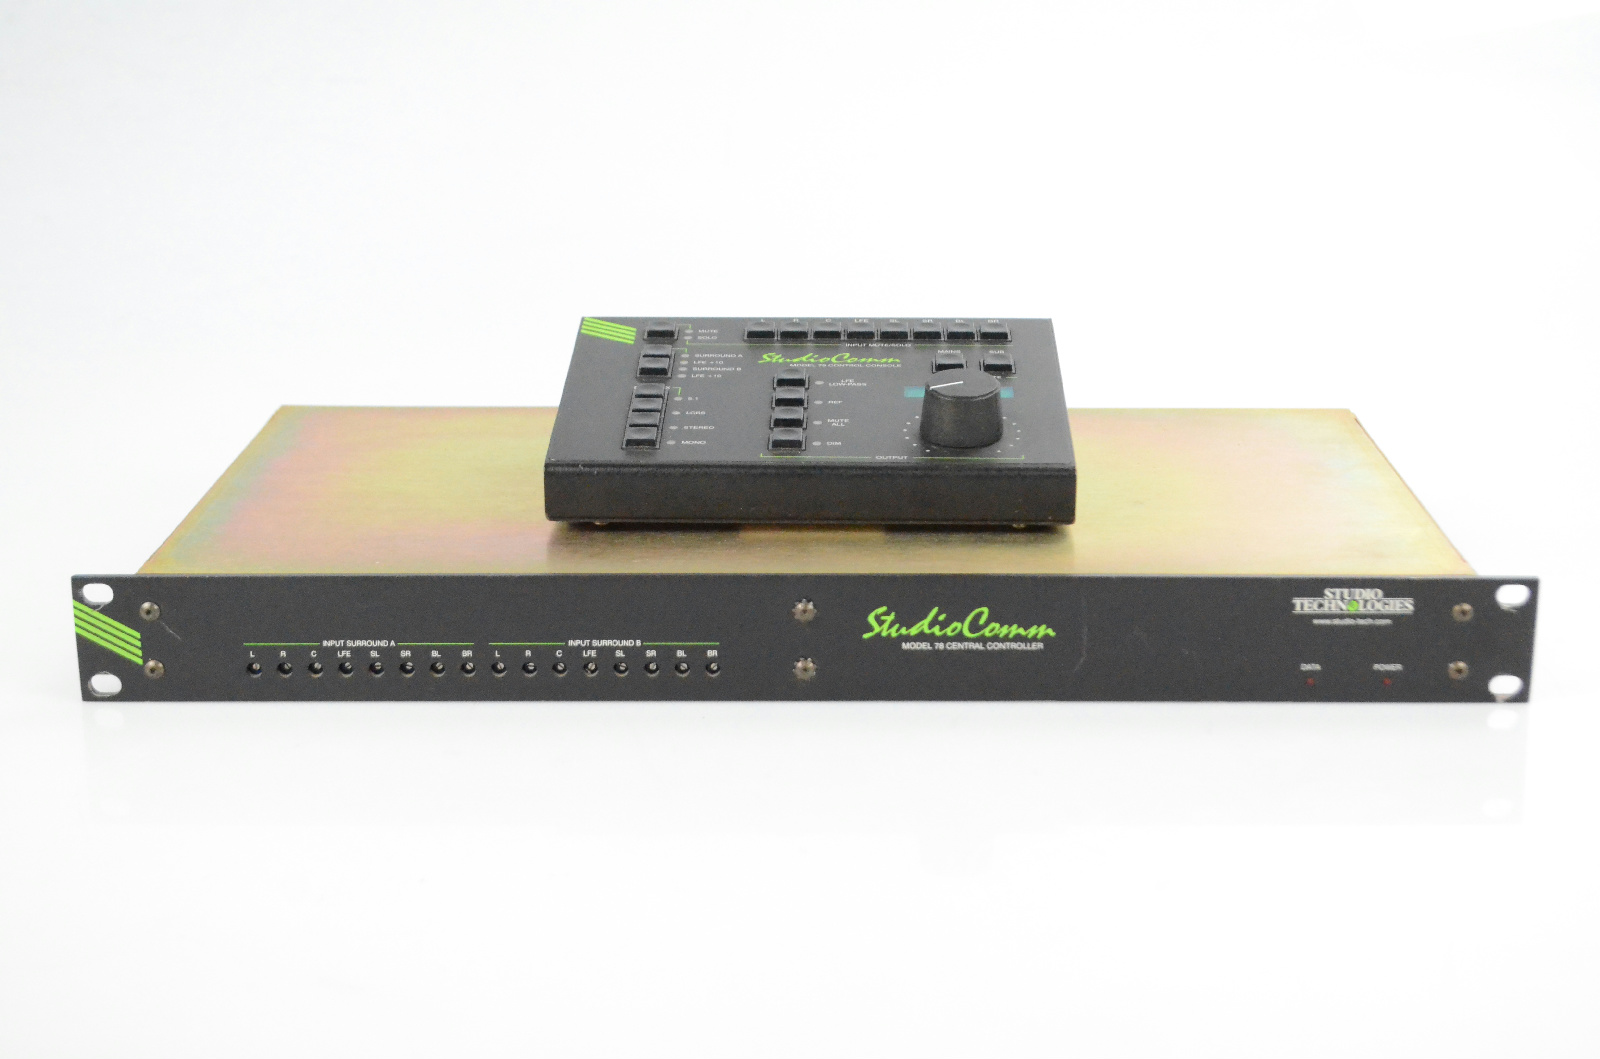 StudioComm 78 Controller & 79 Console Remote Owned by Reinhold Mack #33838